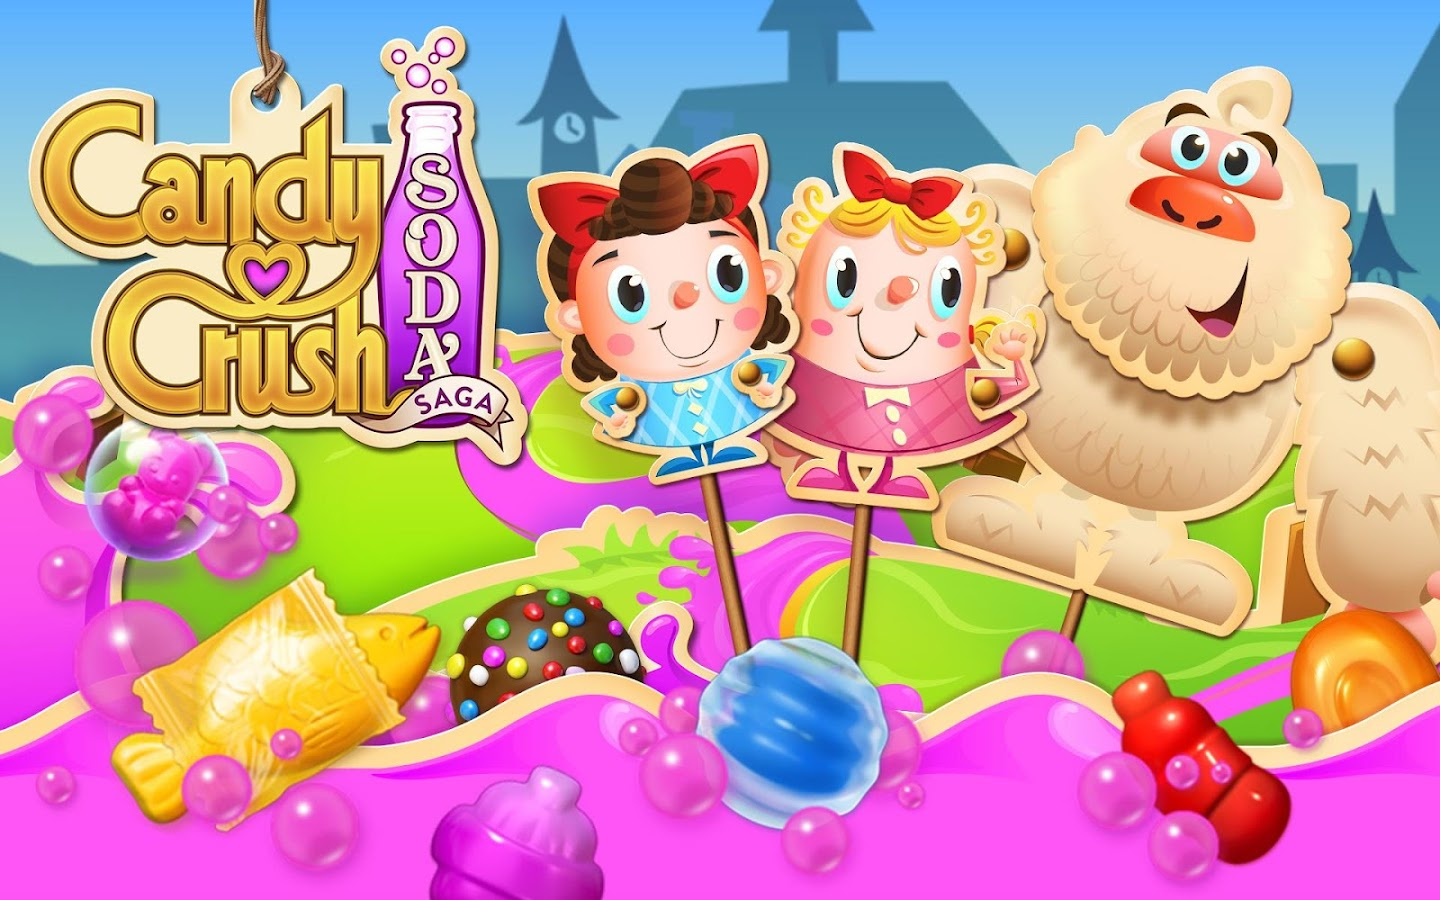 Candy Crush Soda Saga WindowsLover